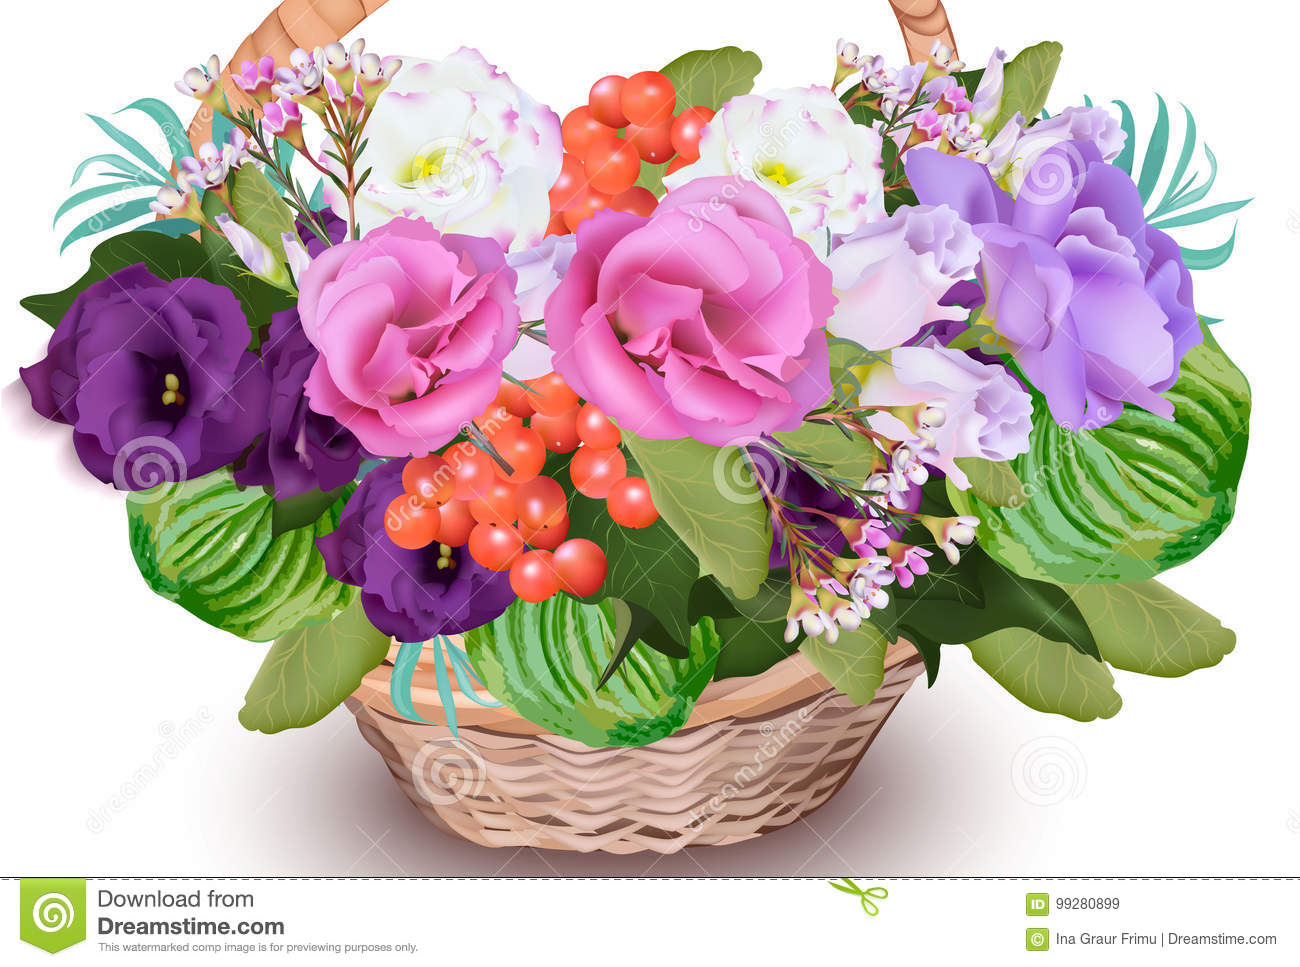 Realistic Floral Bouquet In A Basket Vector Beautiful Decor